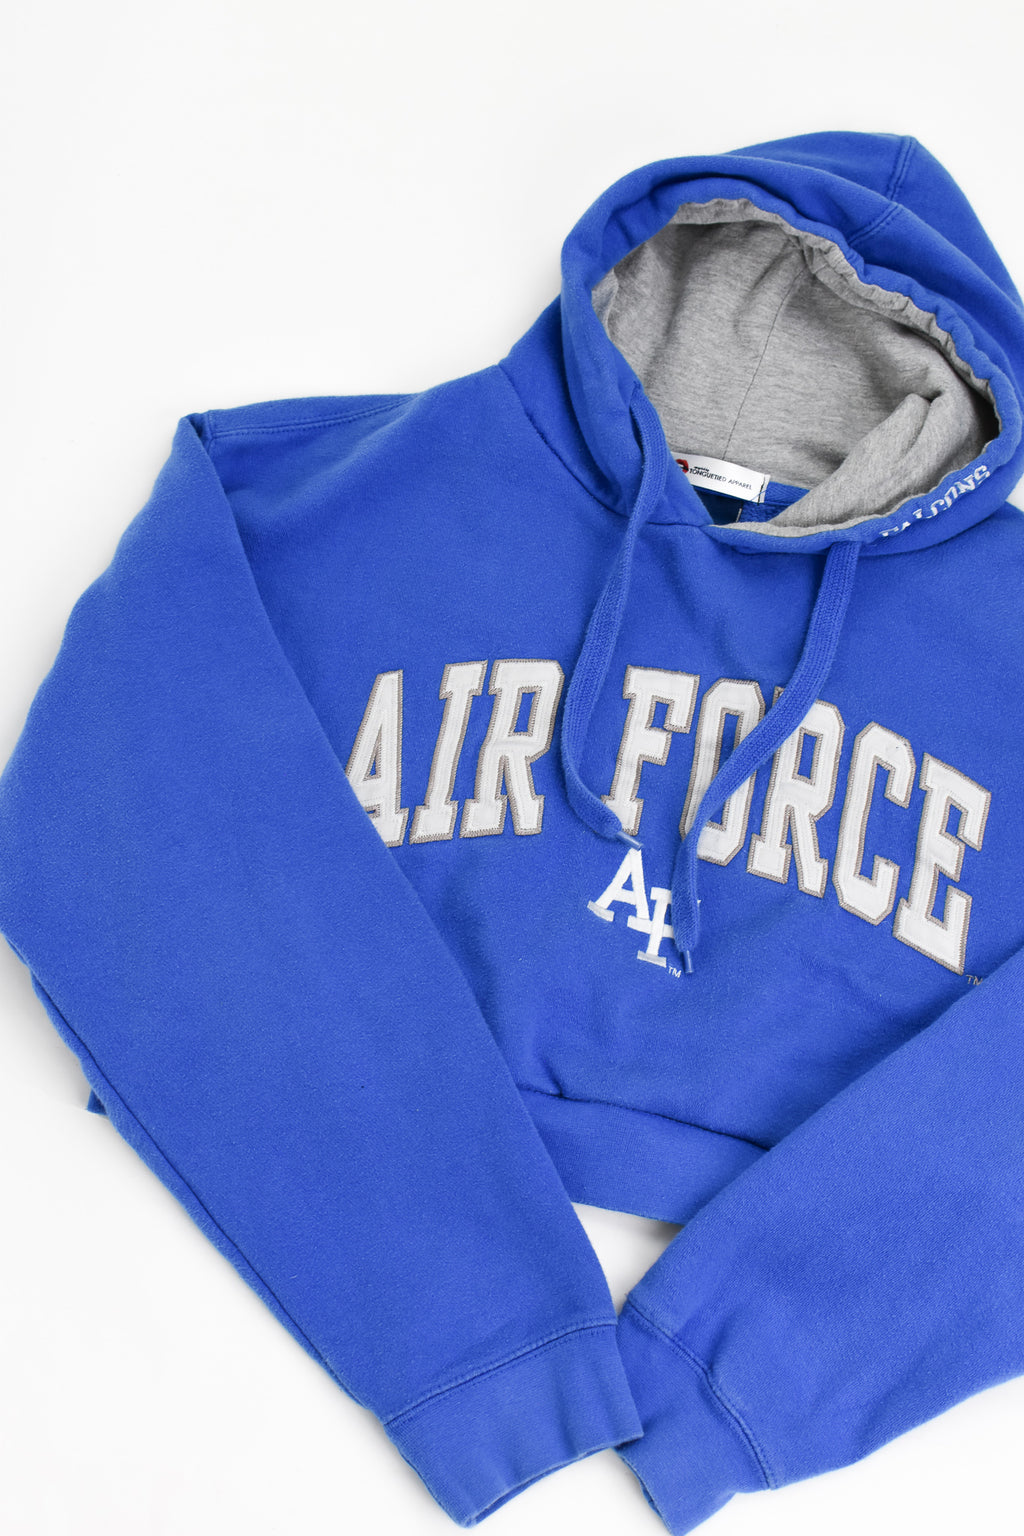 Upcycled VINTAGE Air Force Cropped Sweatshirt